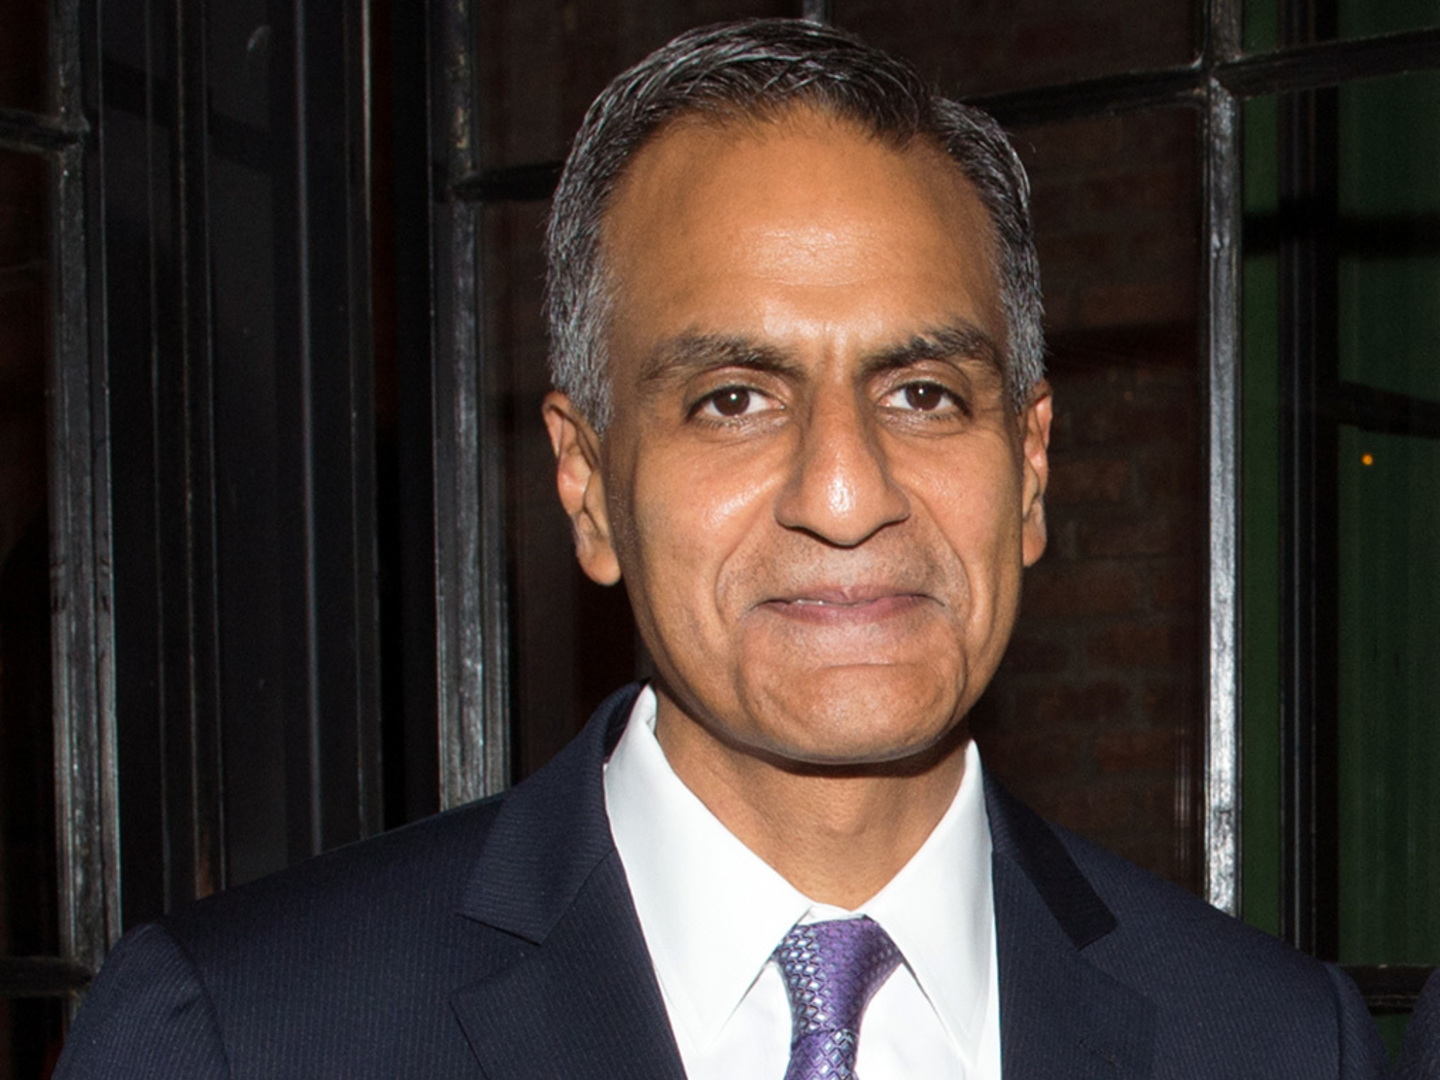 Mastercard's India trump card: From policy to investments, Richard Verma has his task cut out